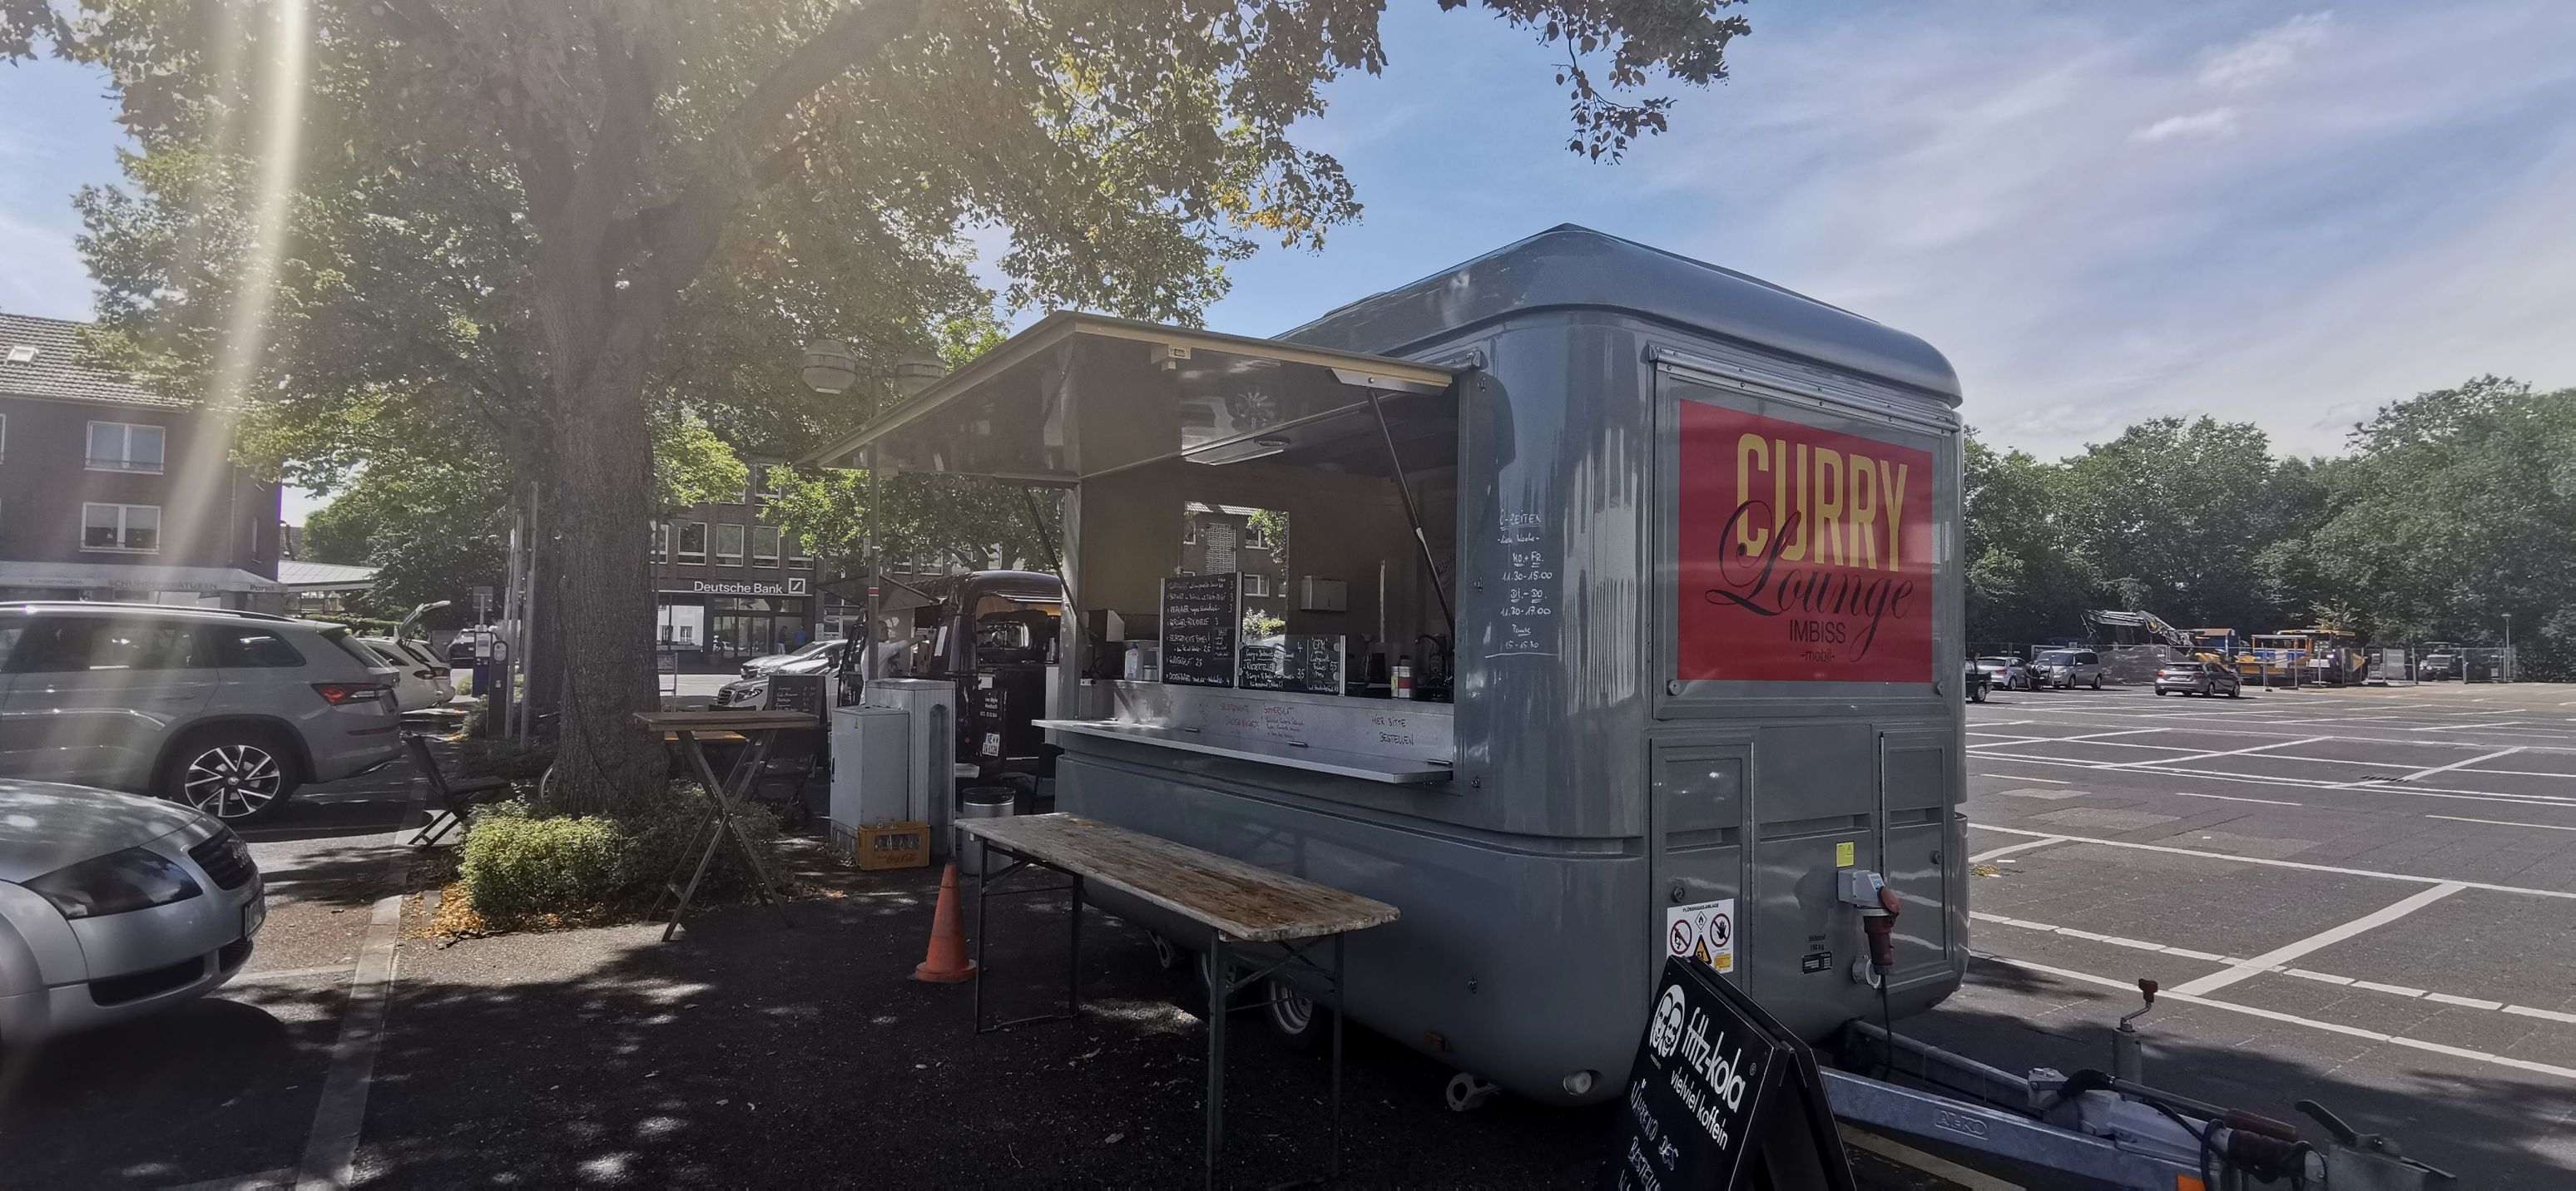 CURRY LOUNGE -mobil-